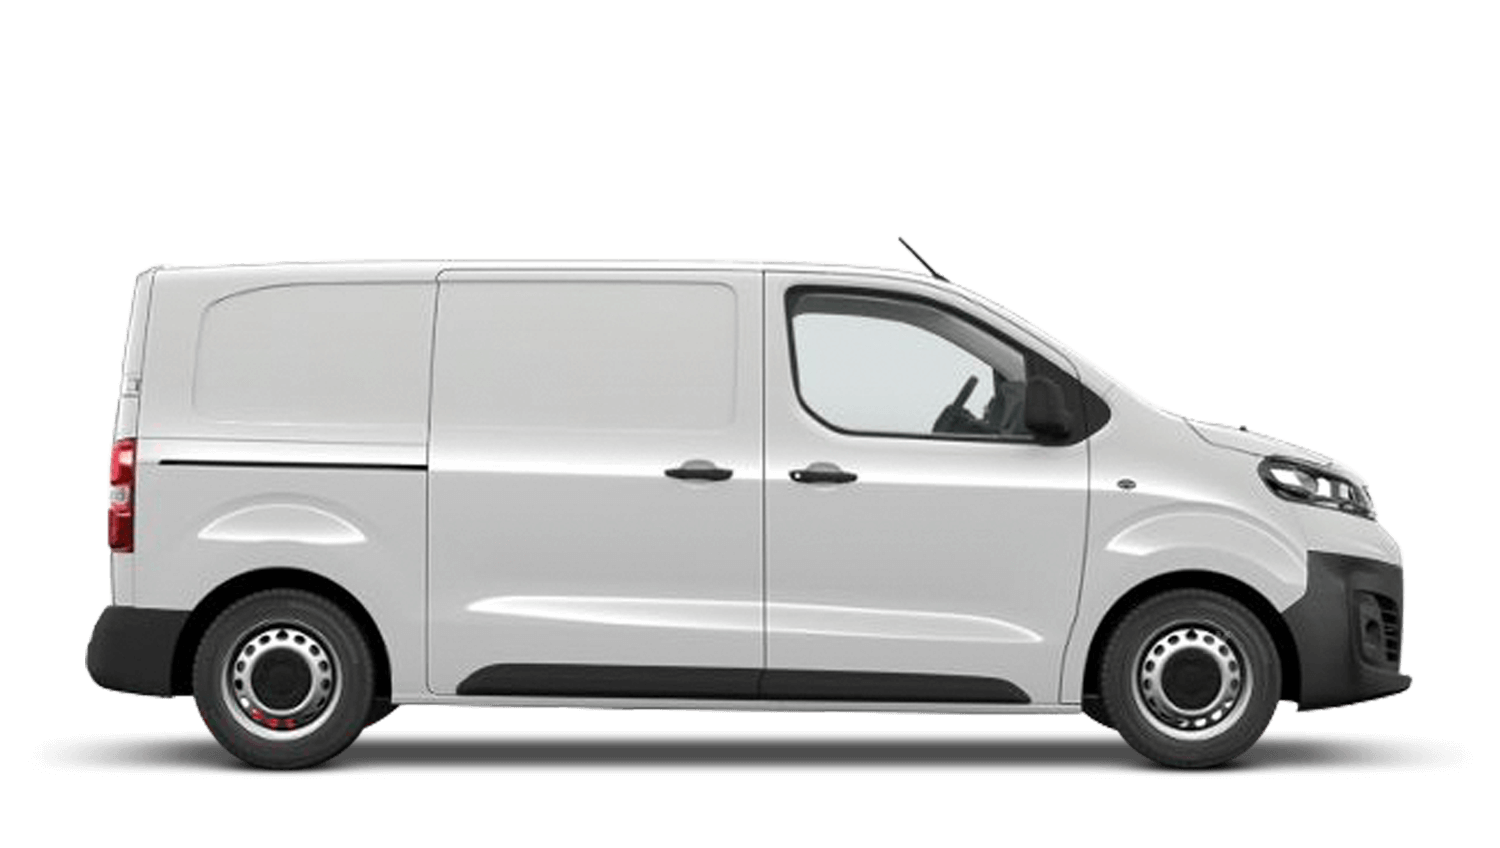 SLM Vauxhall Free2Move New Vivaro Offer